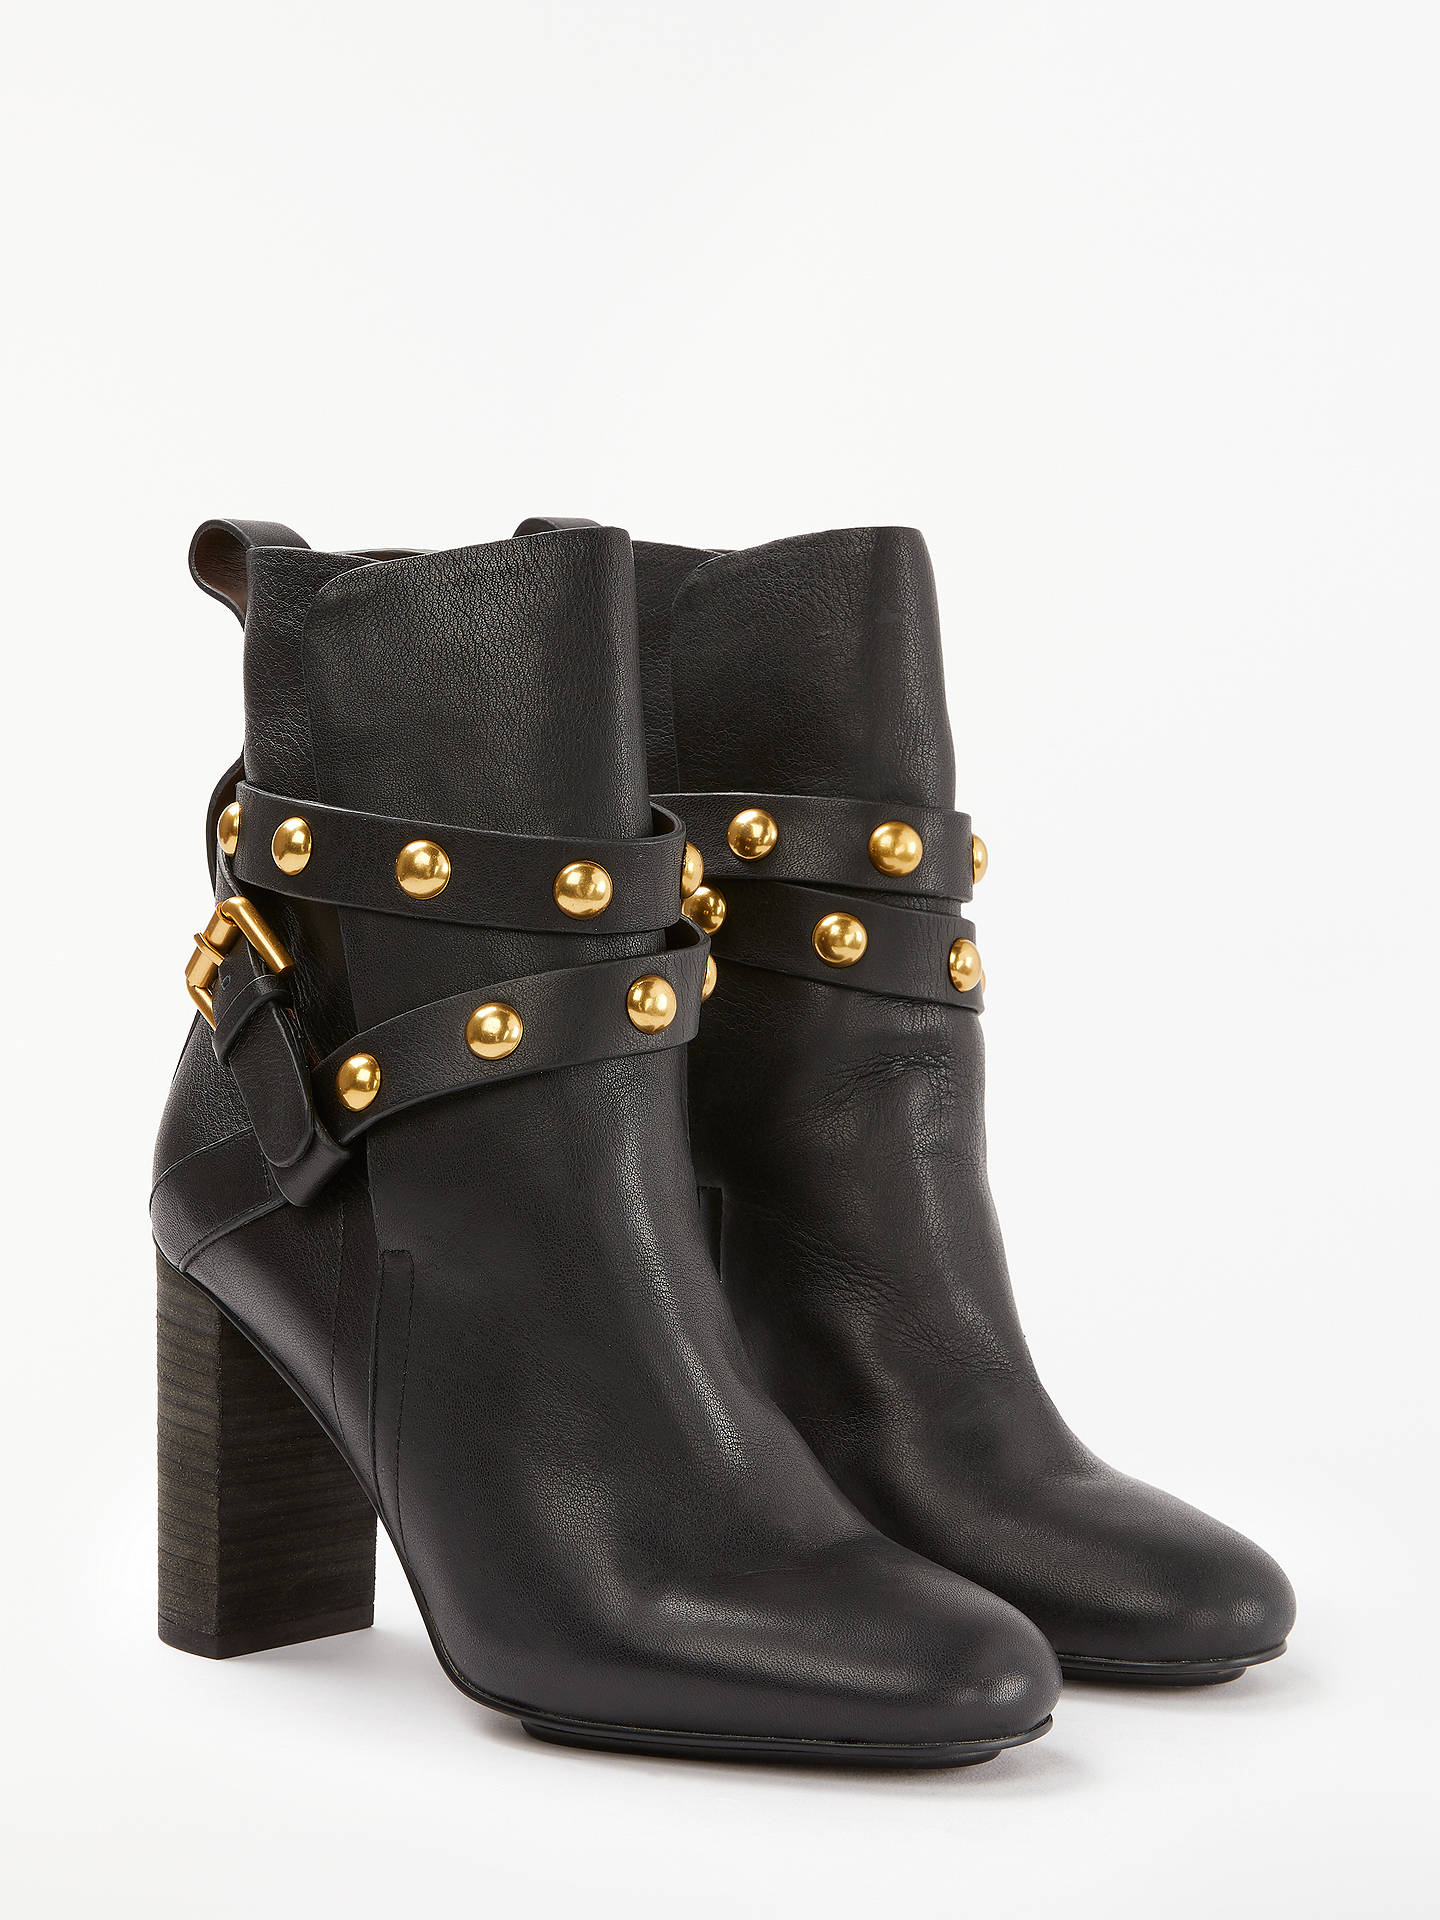 1bbb6bbafb69 ... Buy See By Chloé Stud Embellished Block Heel Ankle Boots